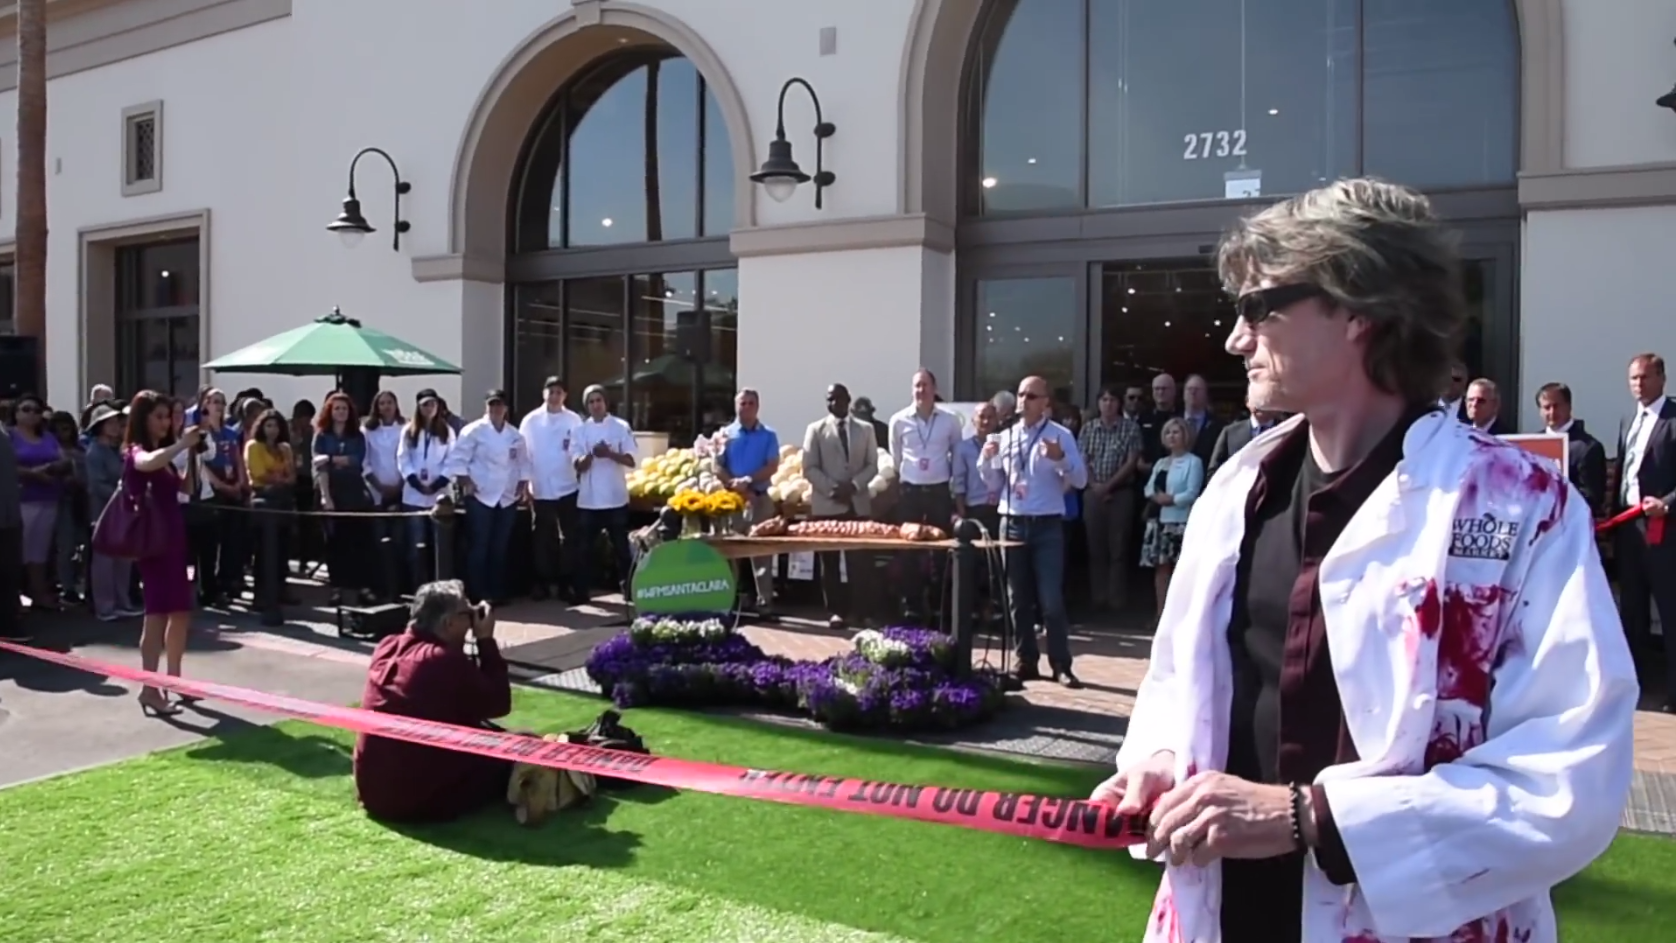 DxE activists cordon off  the grand opening of the Whole Foods  in Santa Clara, CA.